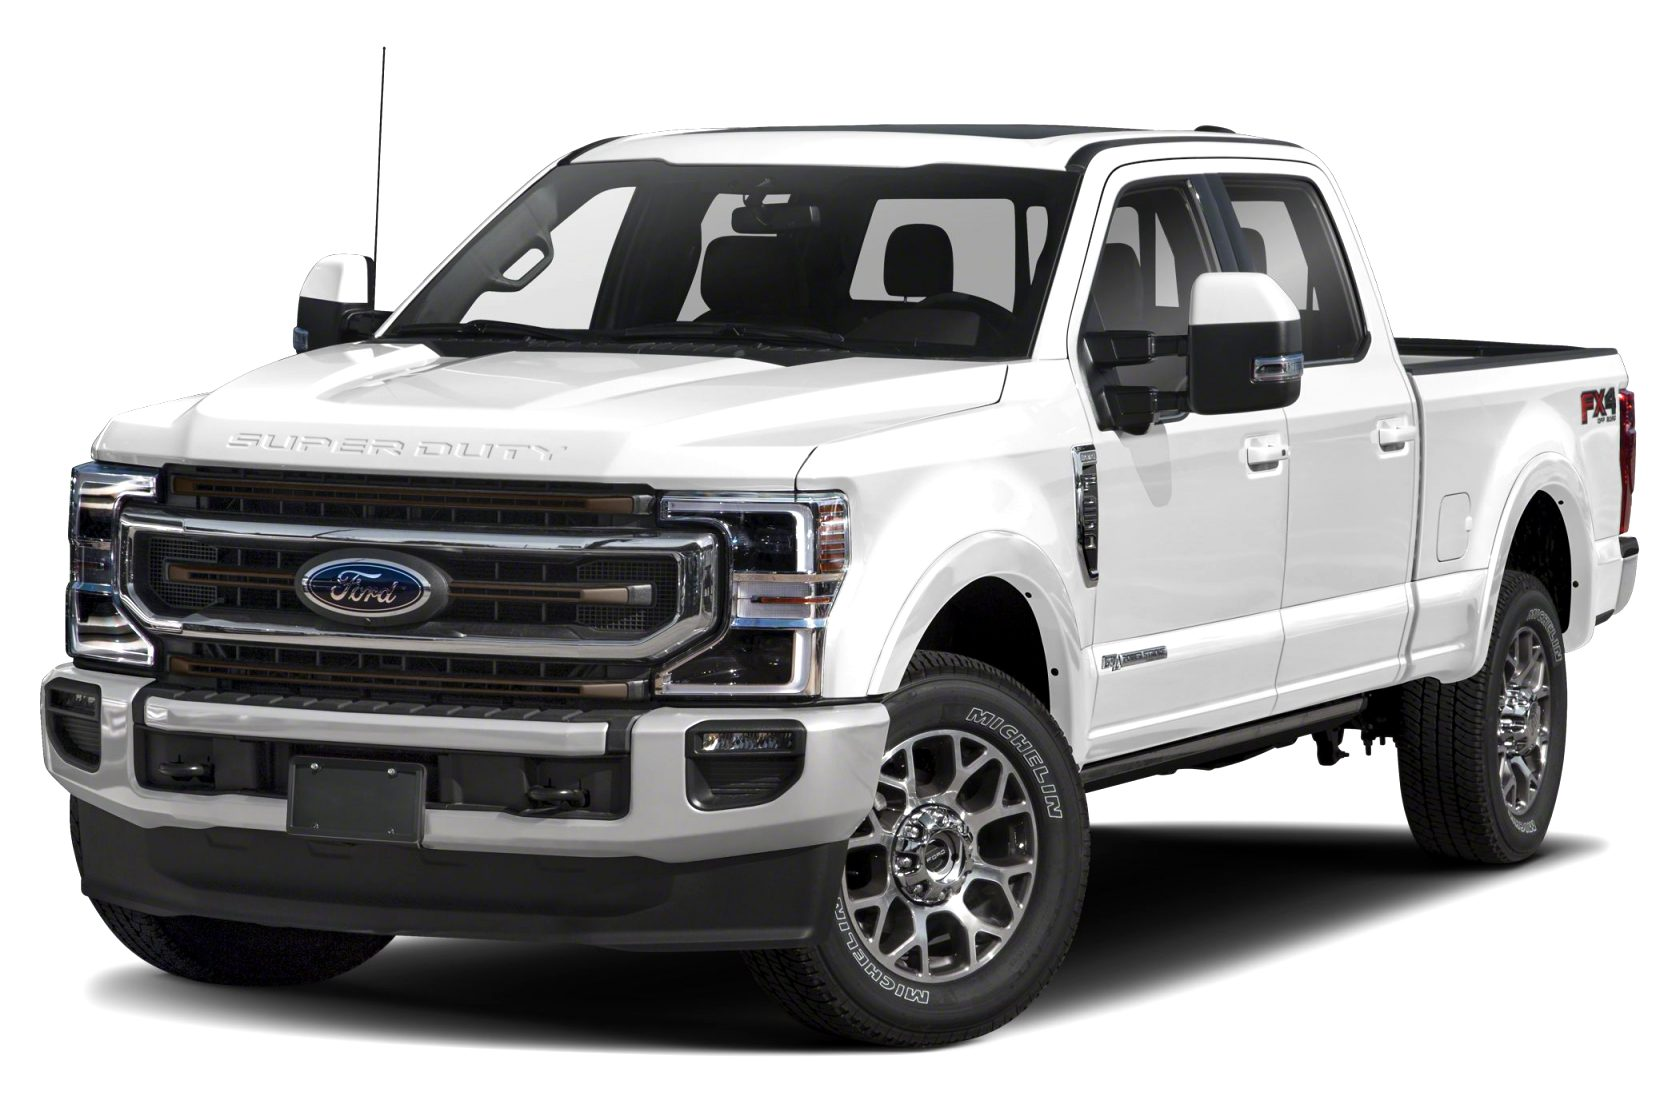 2021 ford king ranch f250 Speed Test